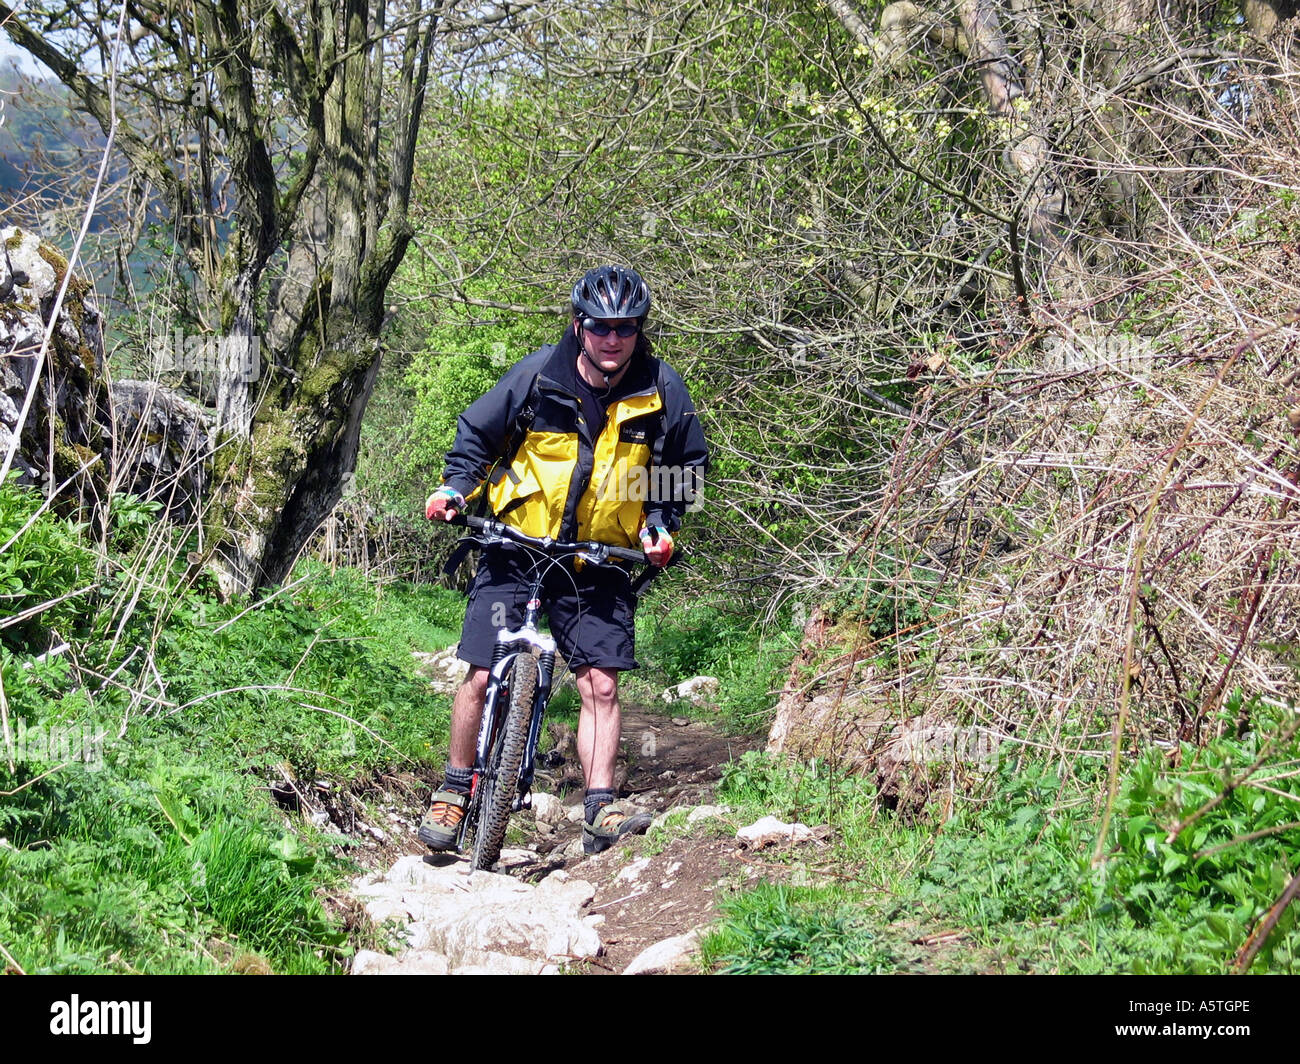 Bike riding High Peak Trail, Peak District, Derbyshire, Great Britain - Stock Image